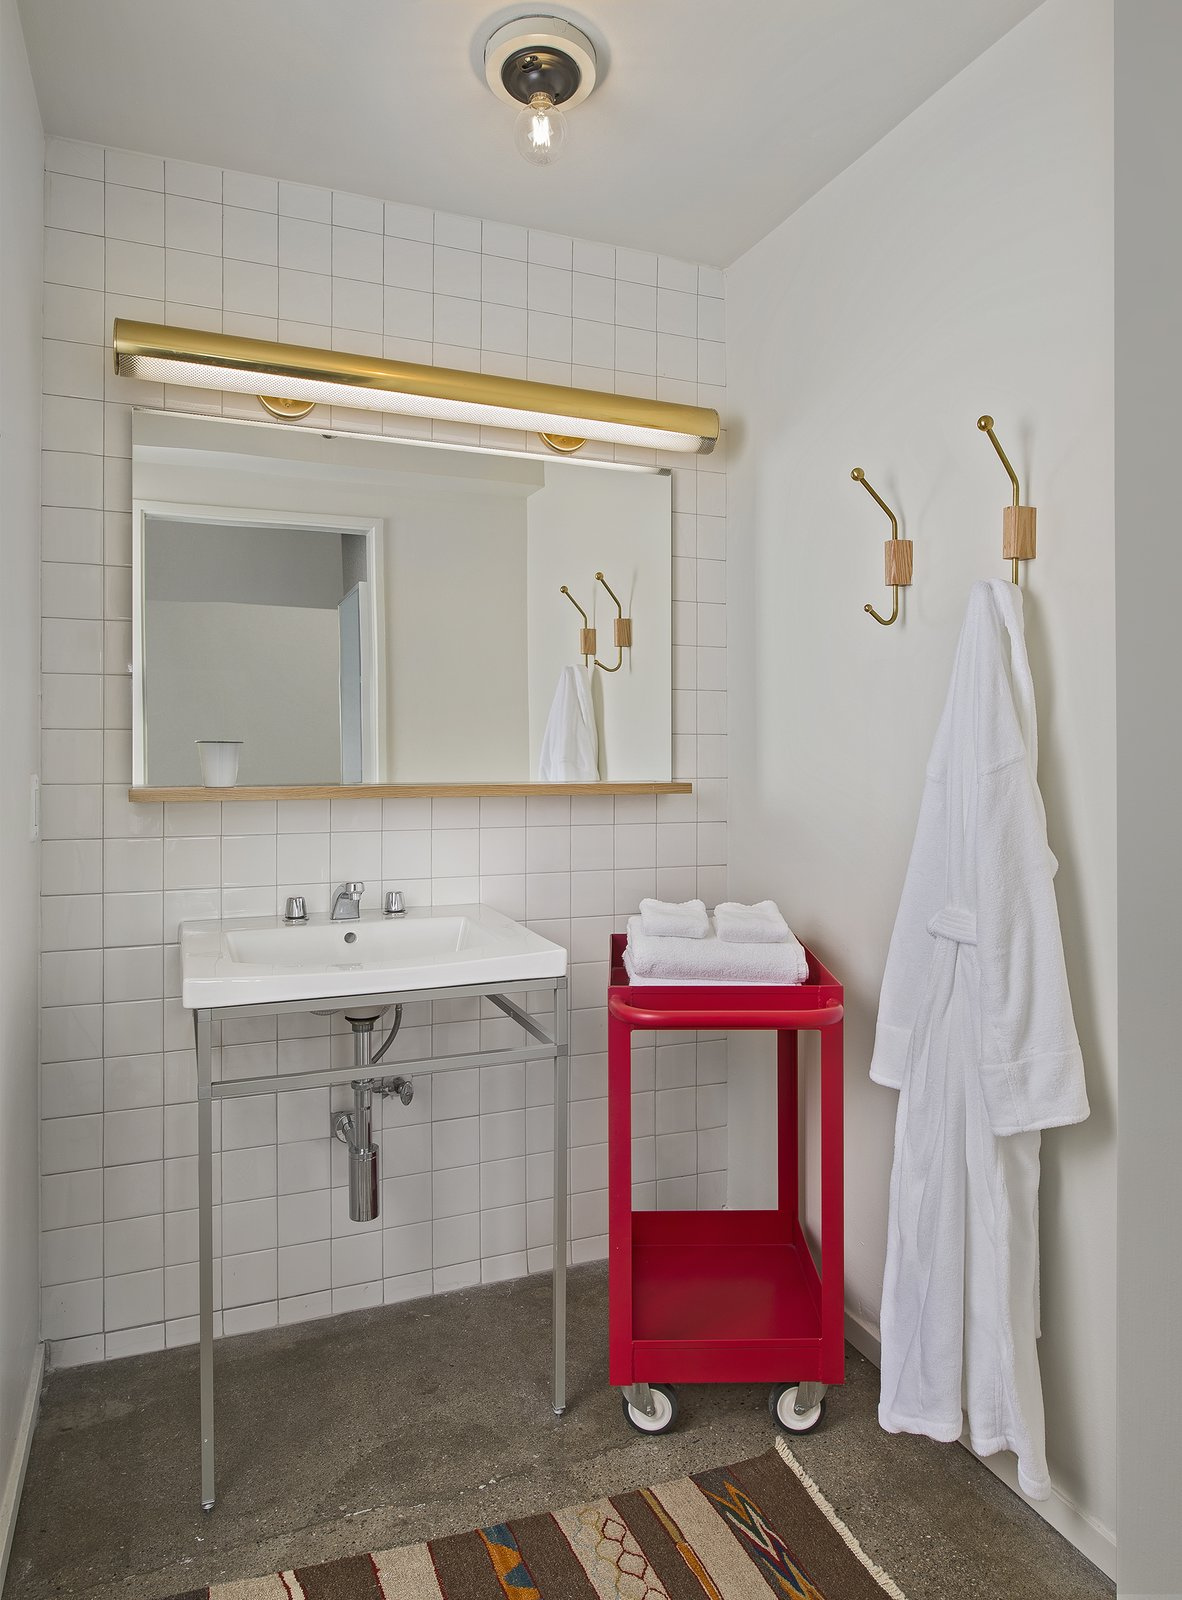 Bath Room, Concrete Floor, Wall Lighting, Pedestal Sink, Ceiling Lighting, Ceramic Tile Wall, Wall Mount Sink, and Rug Floor  Photo 13 of 15 in A Chic Detroit Hotel Showcases Local Art and Craft